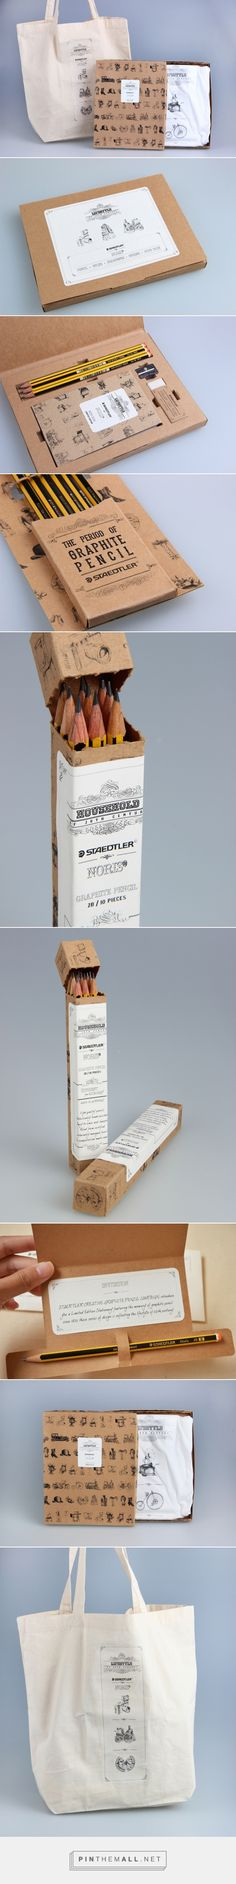 Staedtler Limited Edition packaging